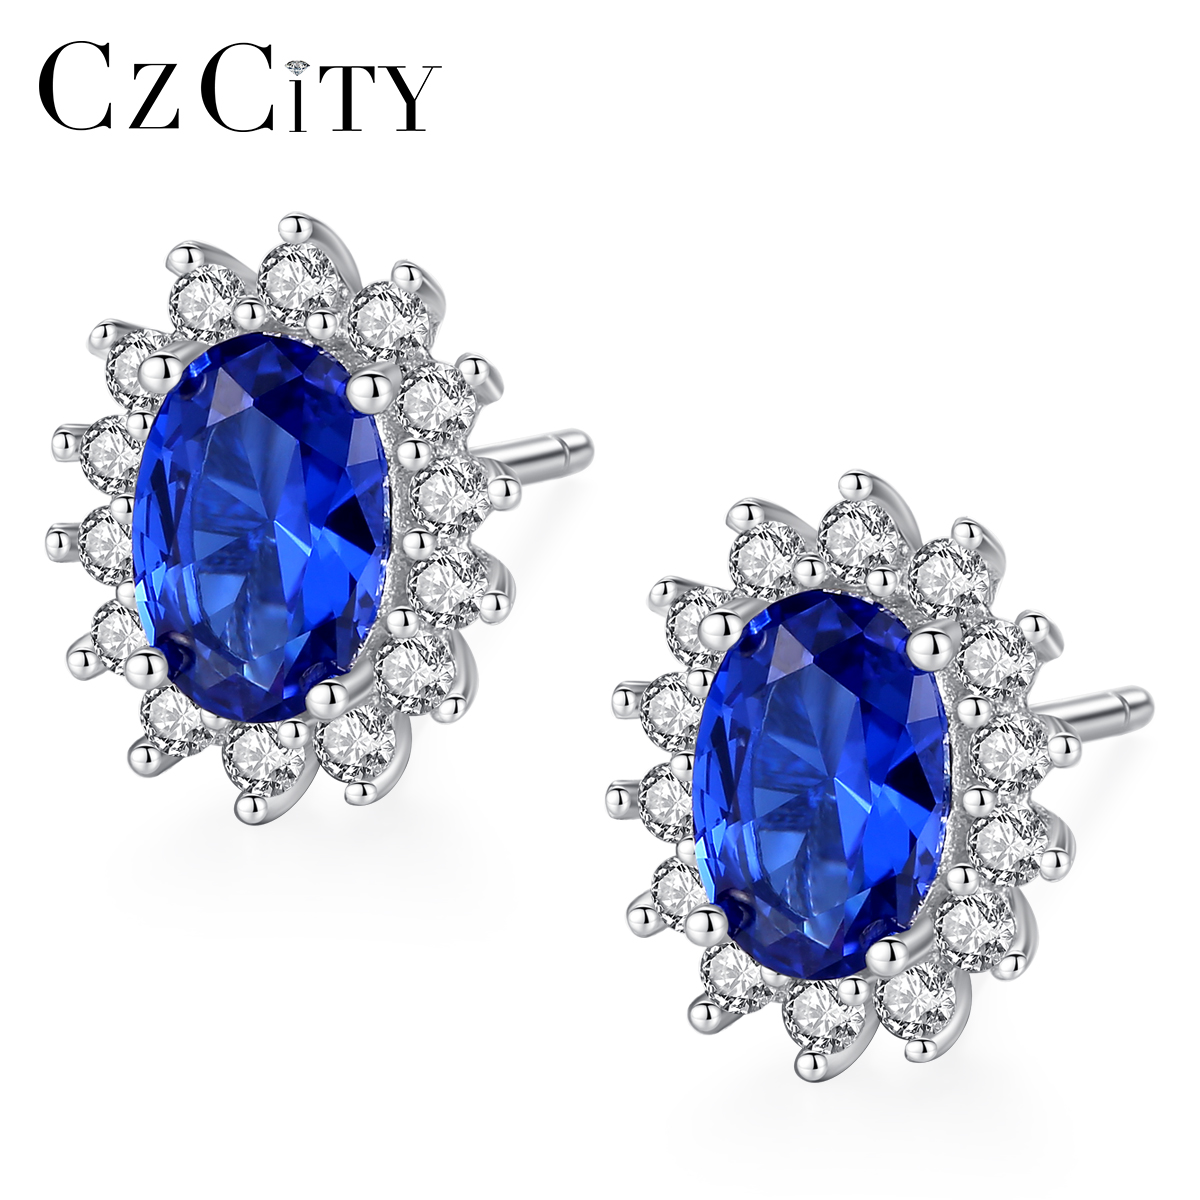 CZCITY New Natural Birthstone Royal Blue Oval Topaz Stud Earrings With Solid 925 Sterling Silver Fine Jewelry For Women Brincos(China)